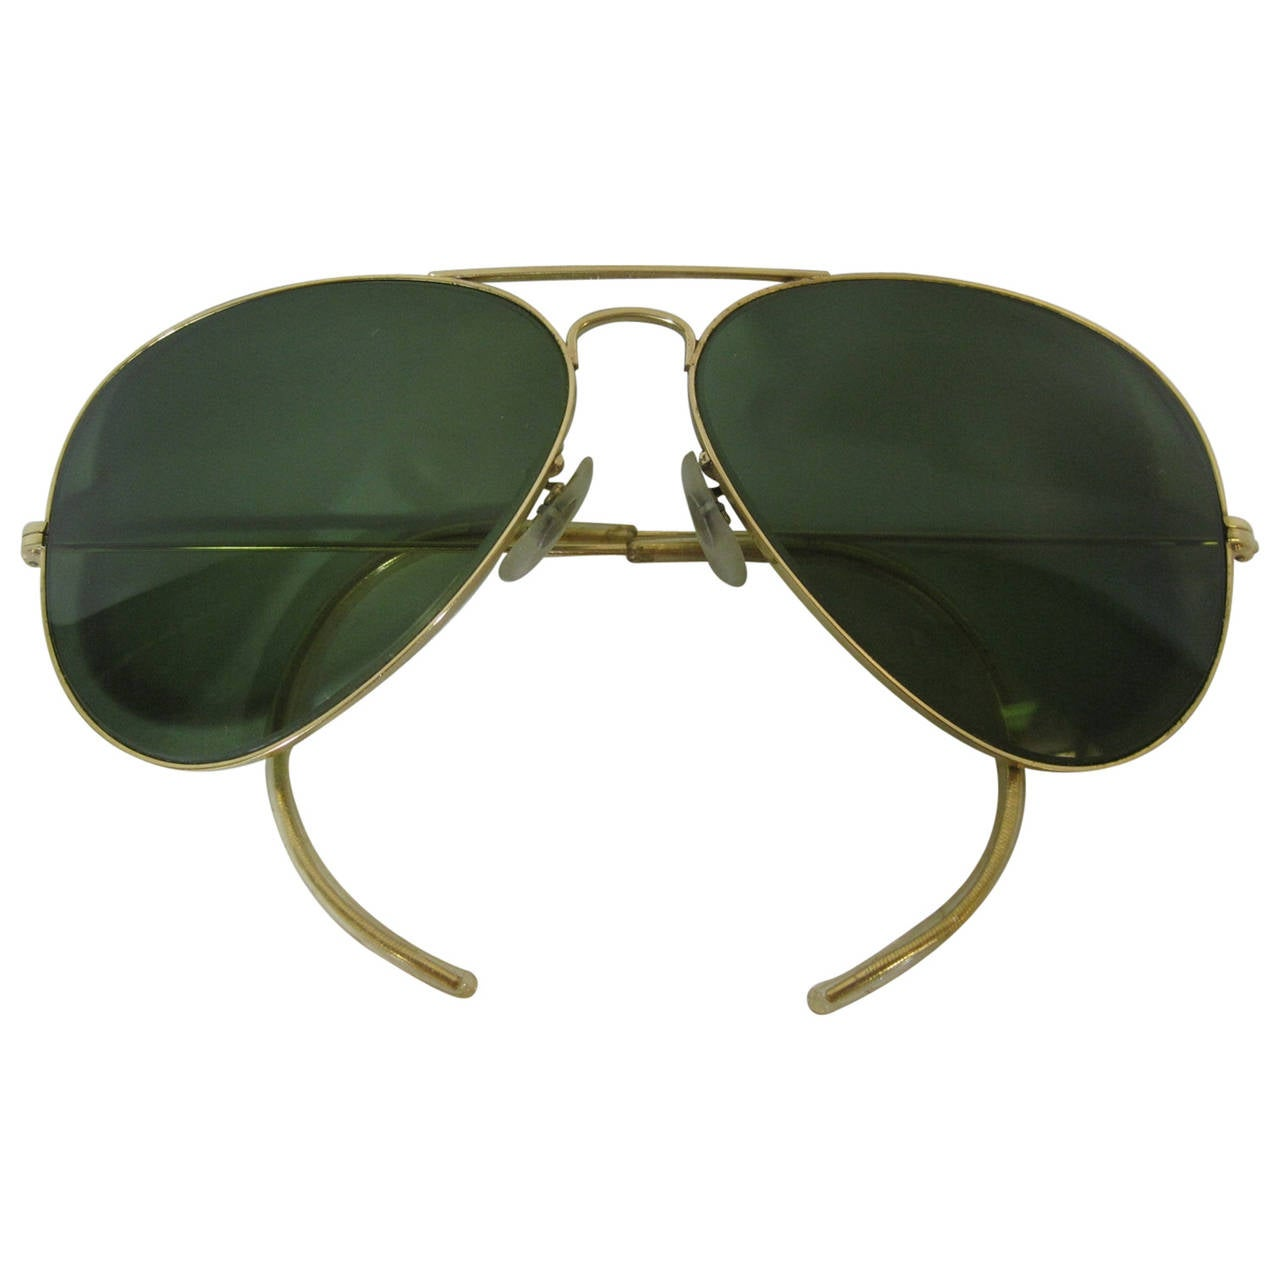 Vintage Aviators Sunglasses 3